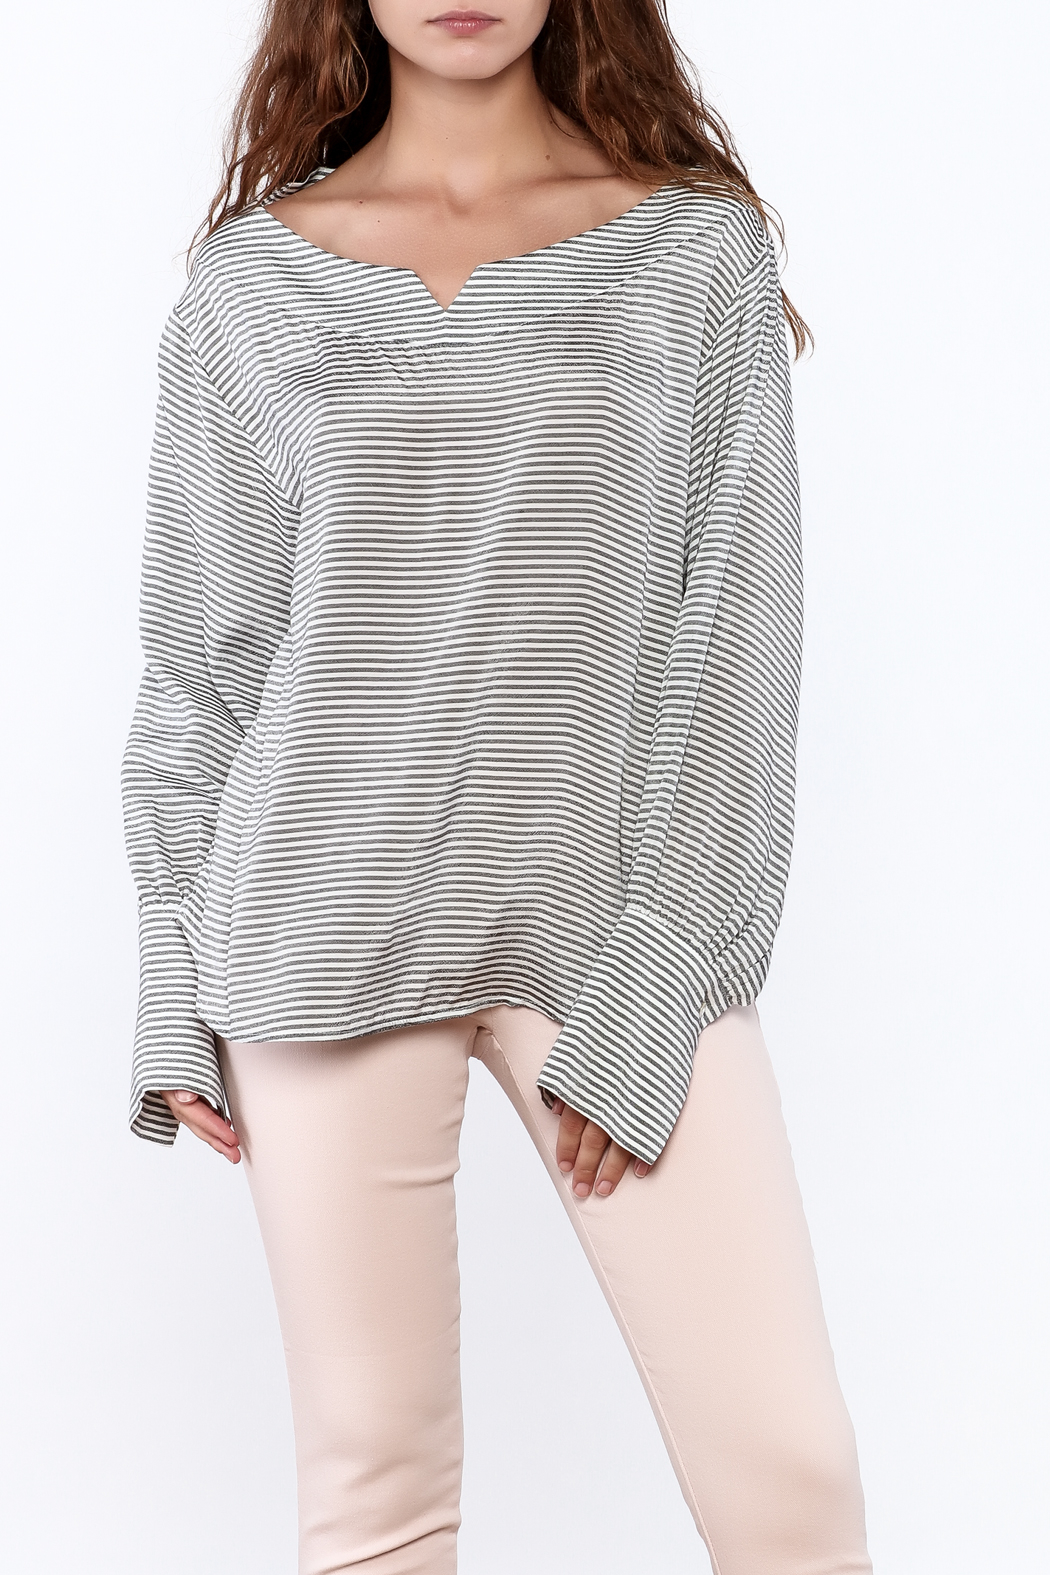 Pinkyotto Preppy Striped Pullover Top - Front Cropped Image